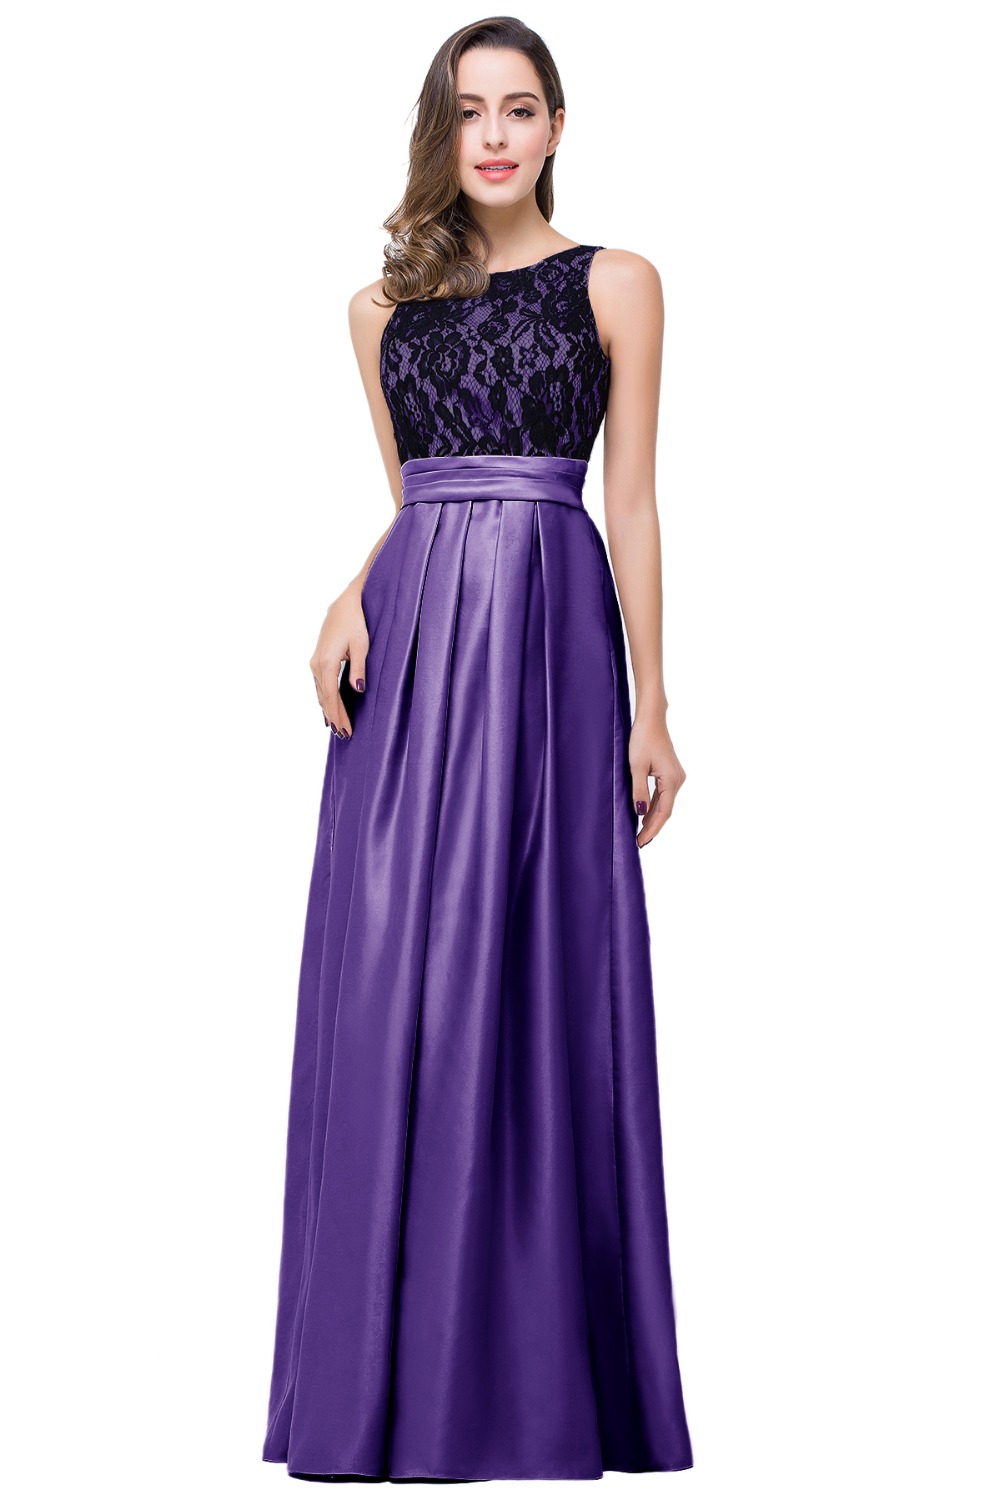 Black and Purple and Turquoise Bridesmaid Dresses | Dress images